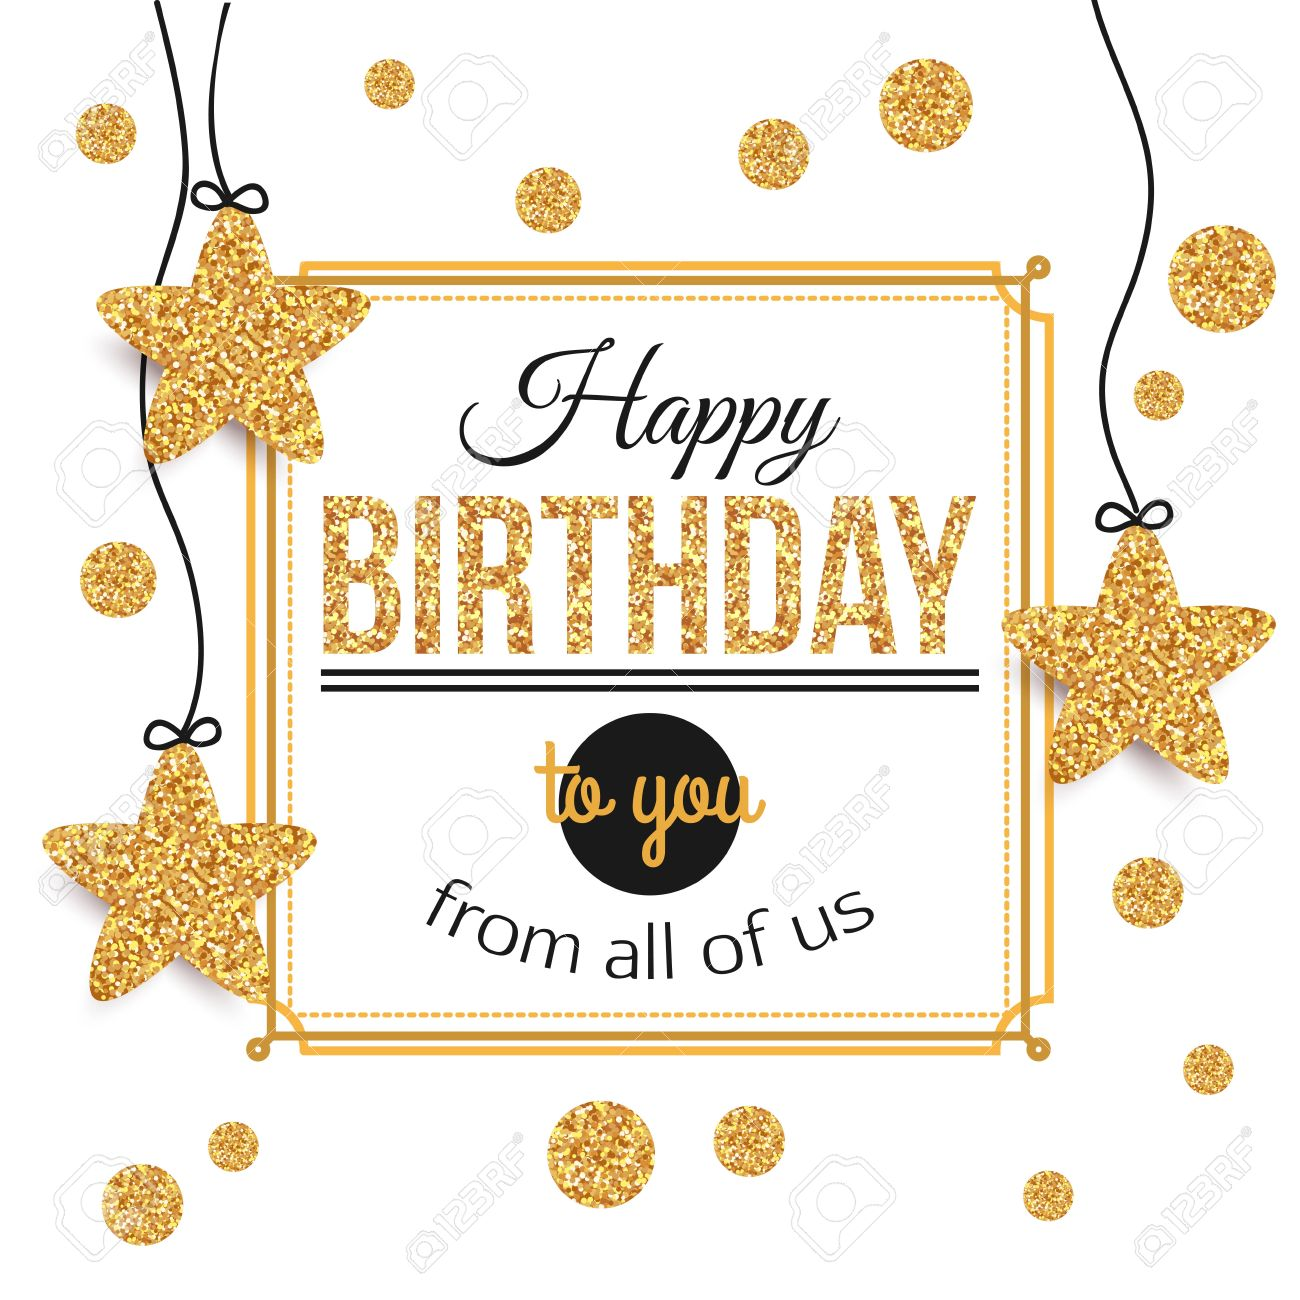 Birthday background with gold stars, polka dots. Birthday - gold text.Happy Birthday template for banner, flyer, brochure, gift certificate, party invitation. Birthday card. Vector illustration. - 55947324